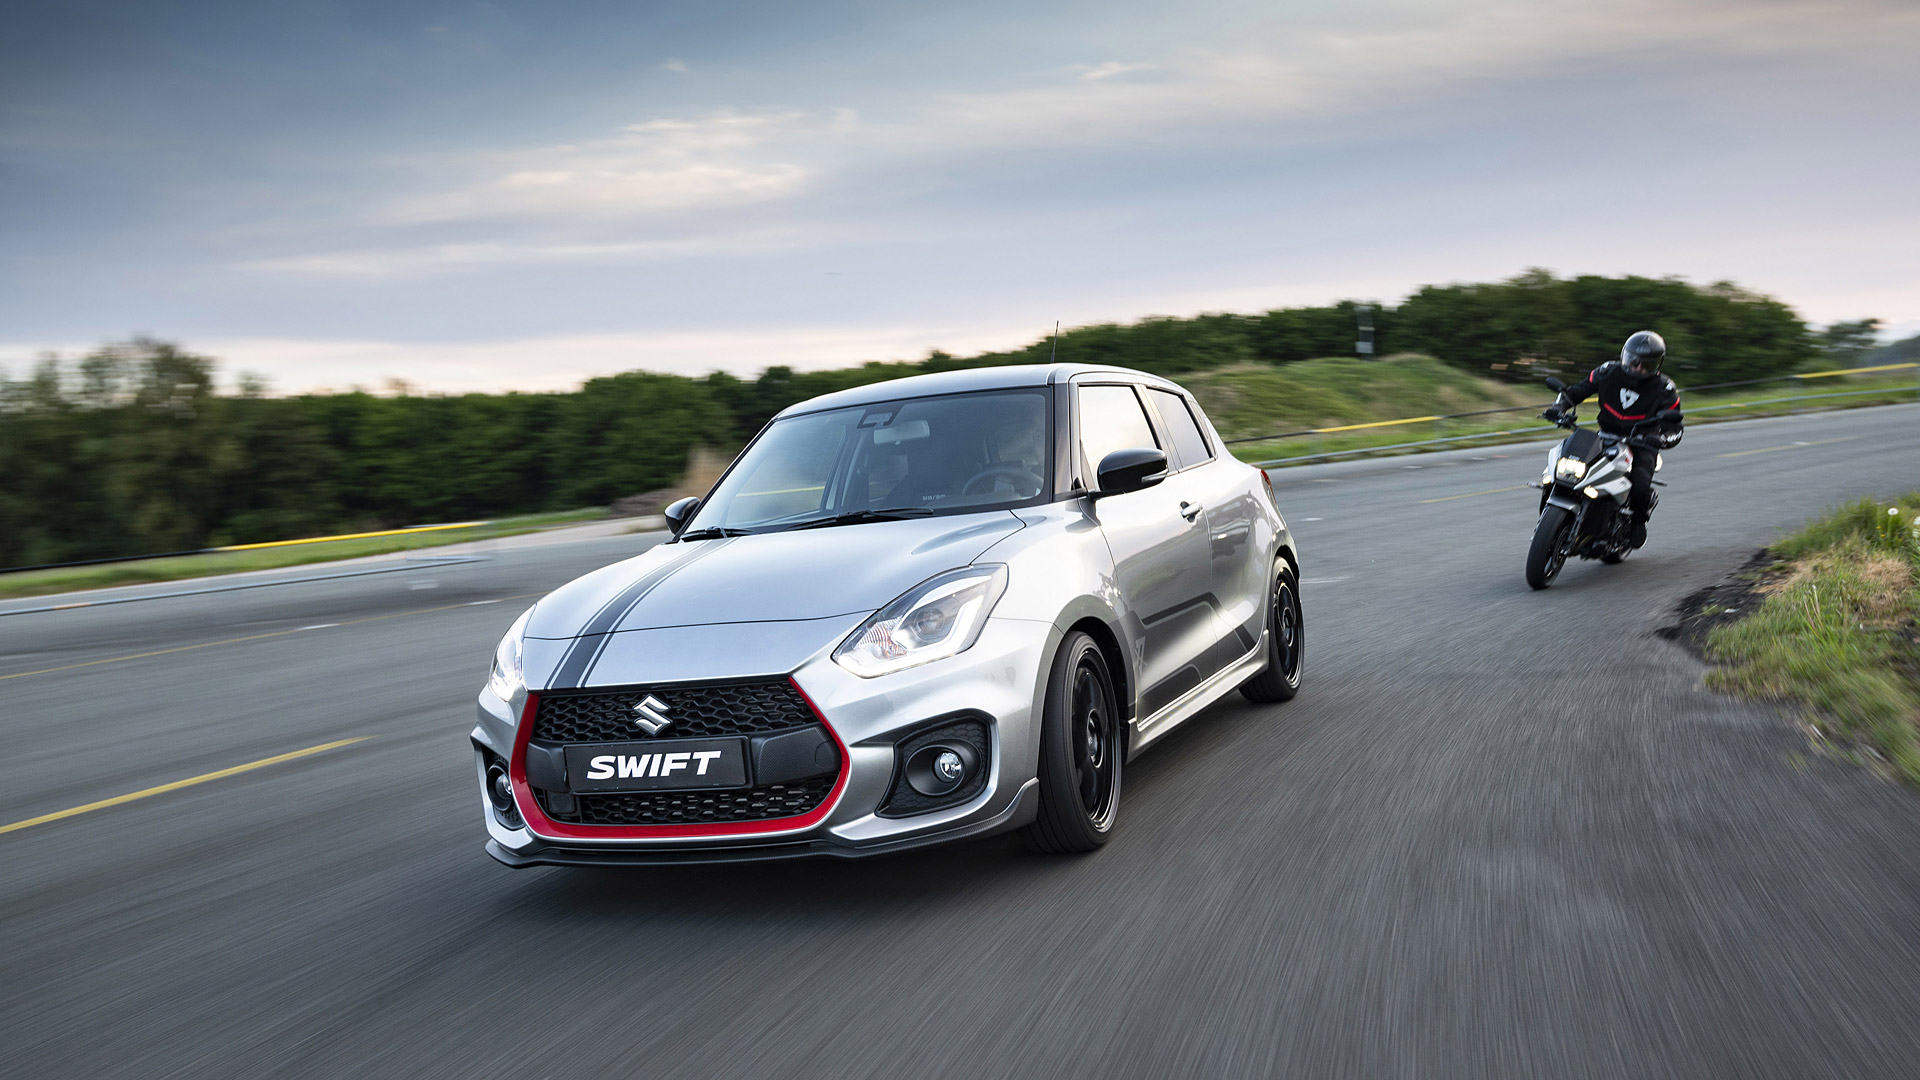 2019 Suzuki Swift Sport Katana Wallpapers HD Images   WSupercars 1920x1080